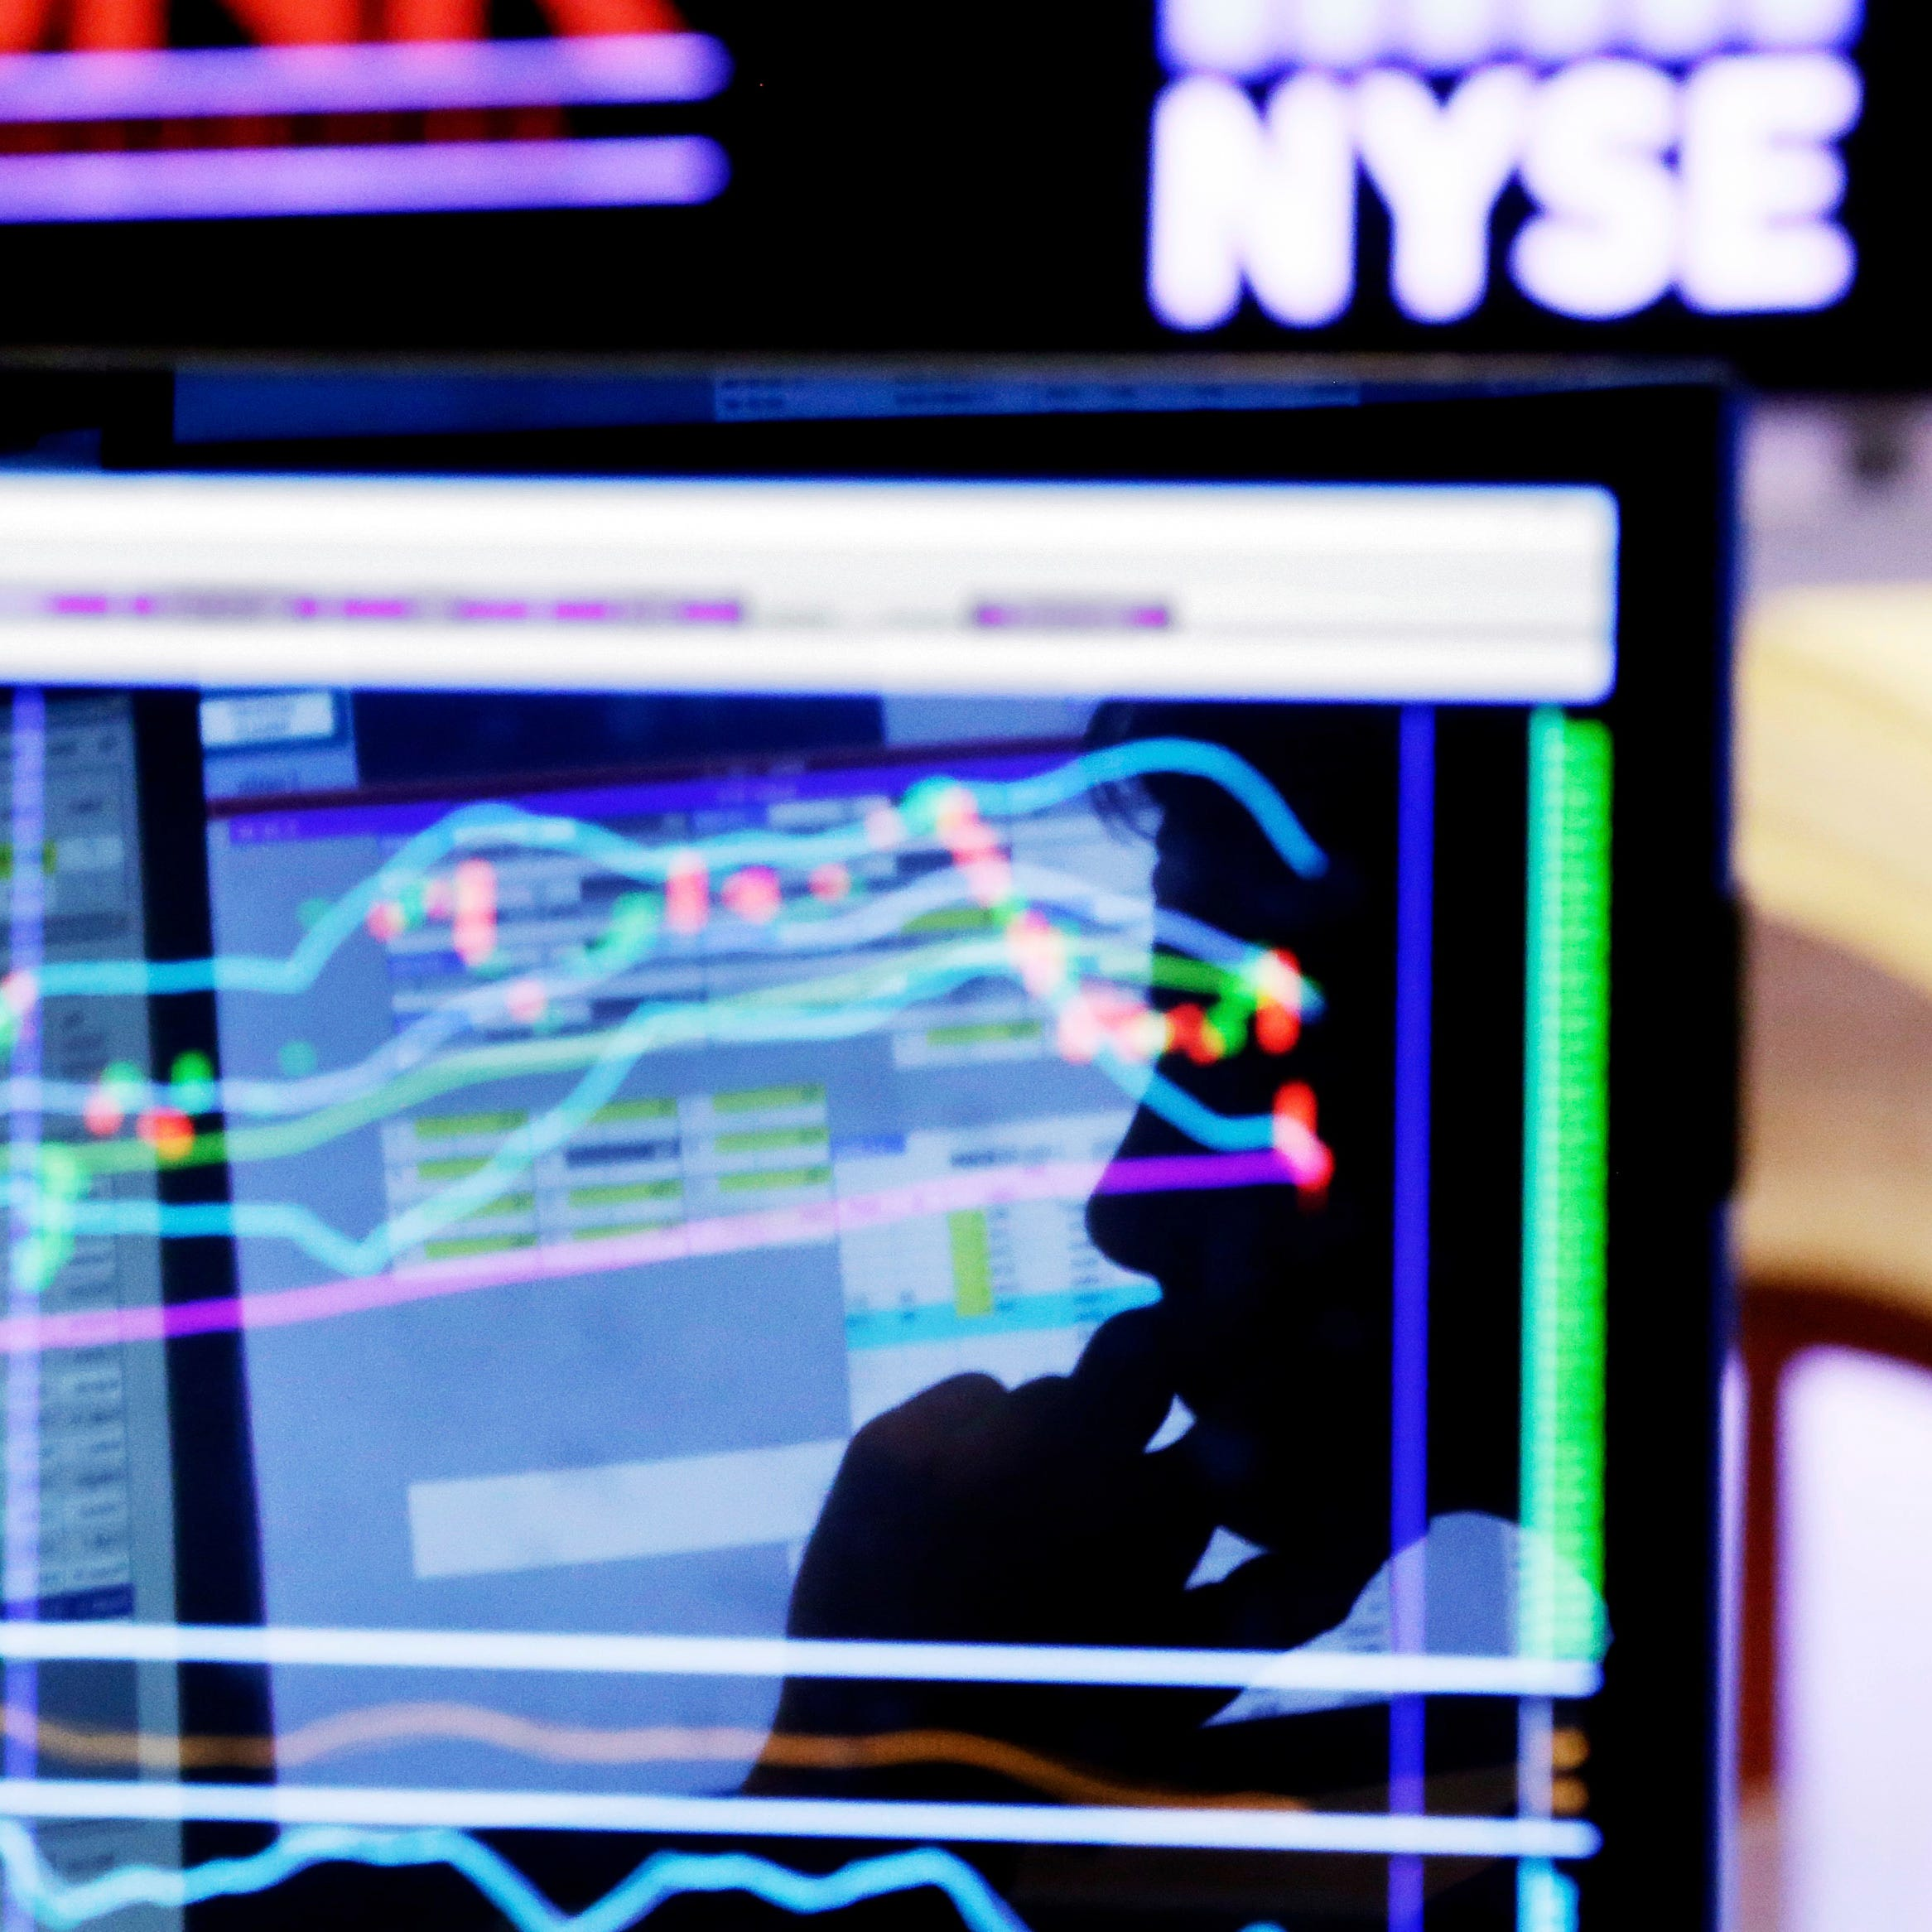 FILE - In this Jan. 11, 2016, file photo, specialist Anthony Rinaldi is silhouetted on a screen at his post on the floor of the New York Stock Exchange. The economy is growing, the stock market is soaring and unemployment remains low. It's the perfect time to prepare for the worst. (AP Photo/Richard Drew, File)